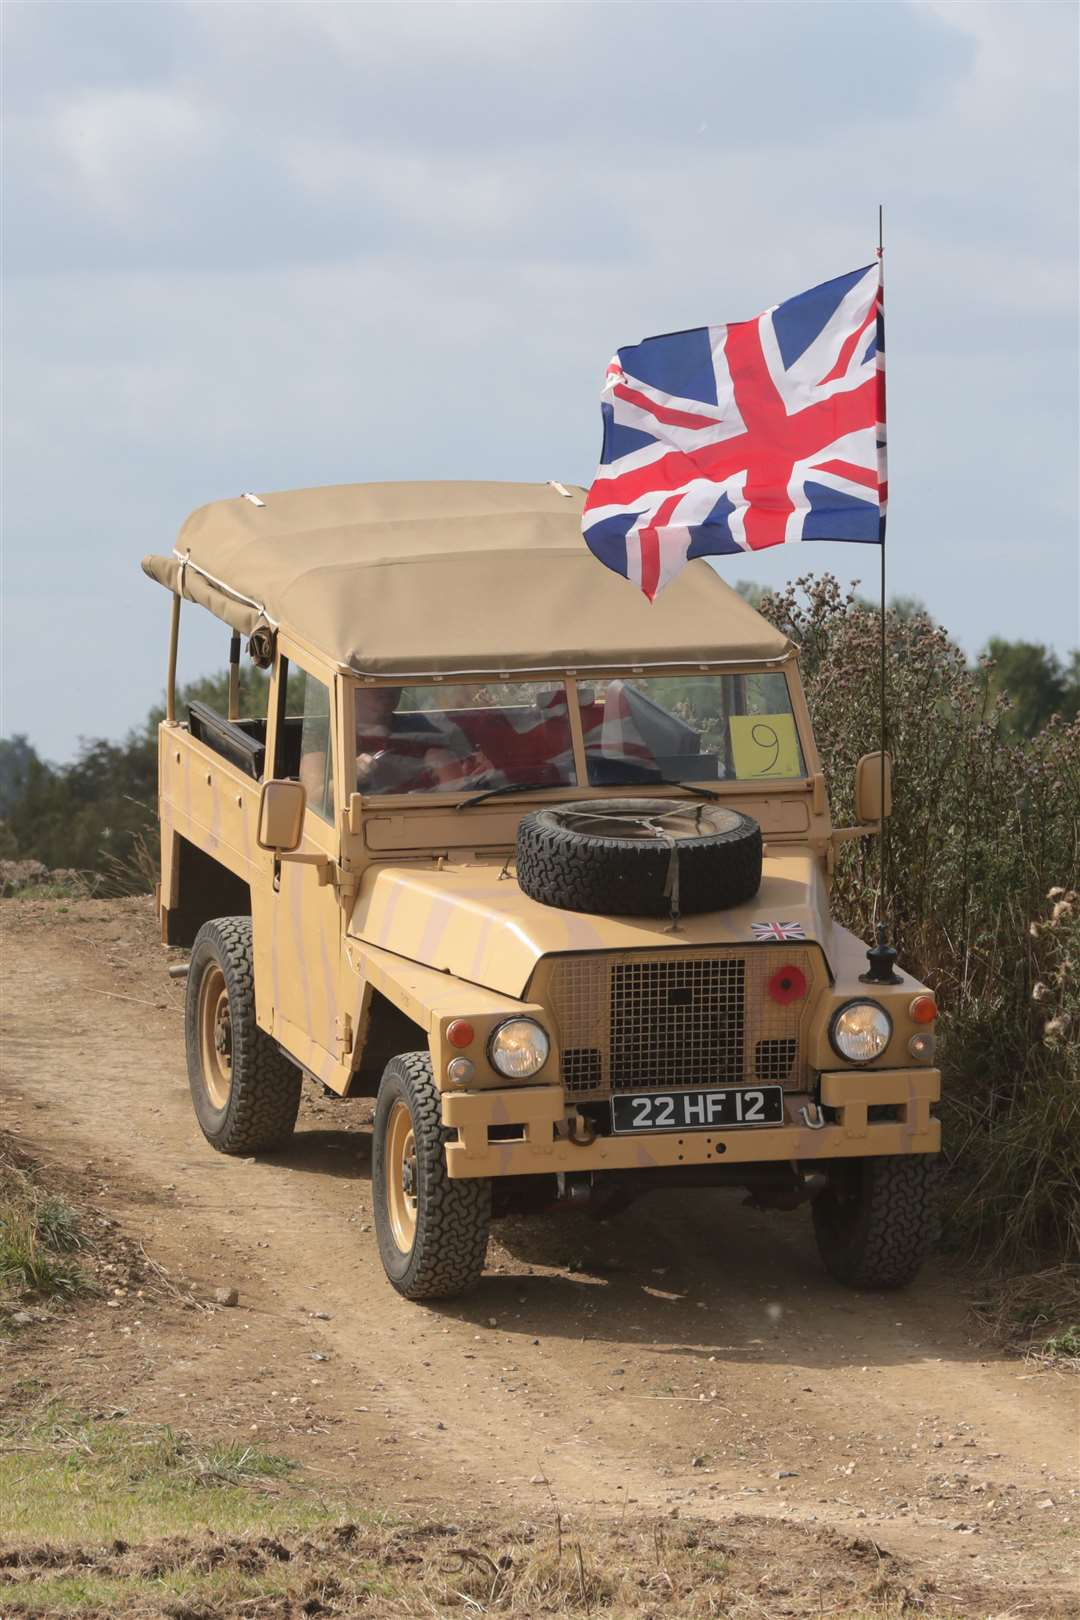 A military vehicle flies the flag